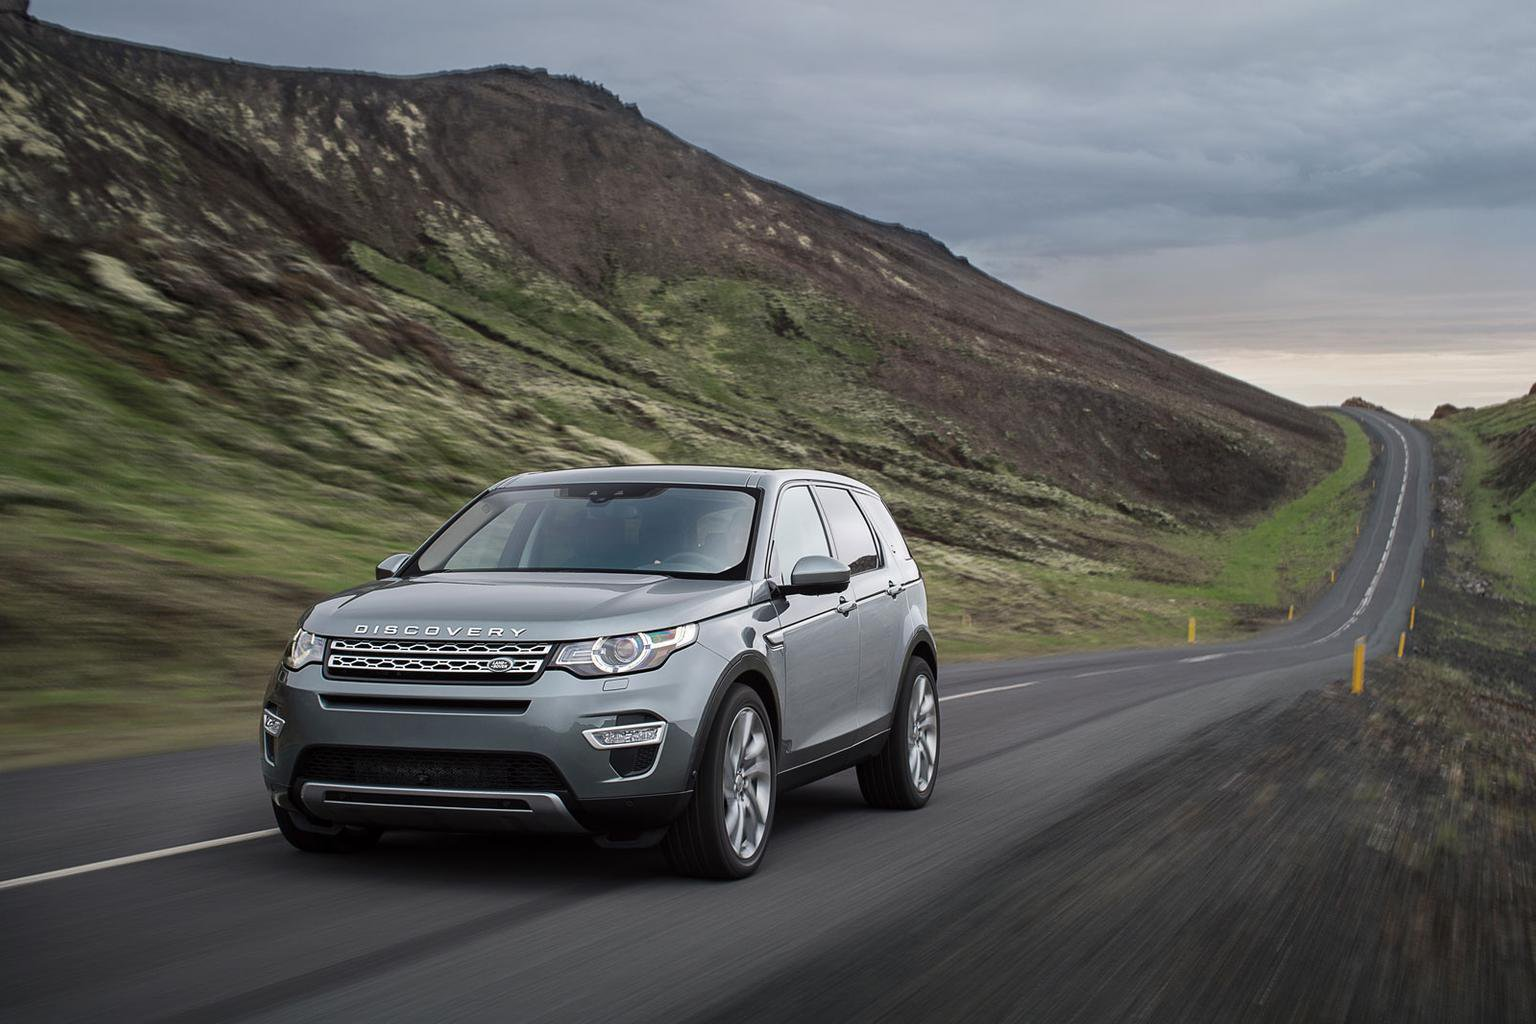 2015 Land Rover Discovery Sport - all you need to know